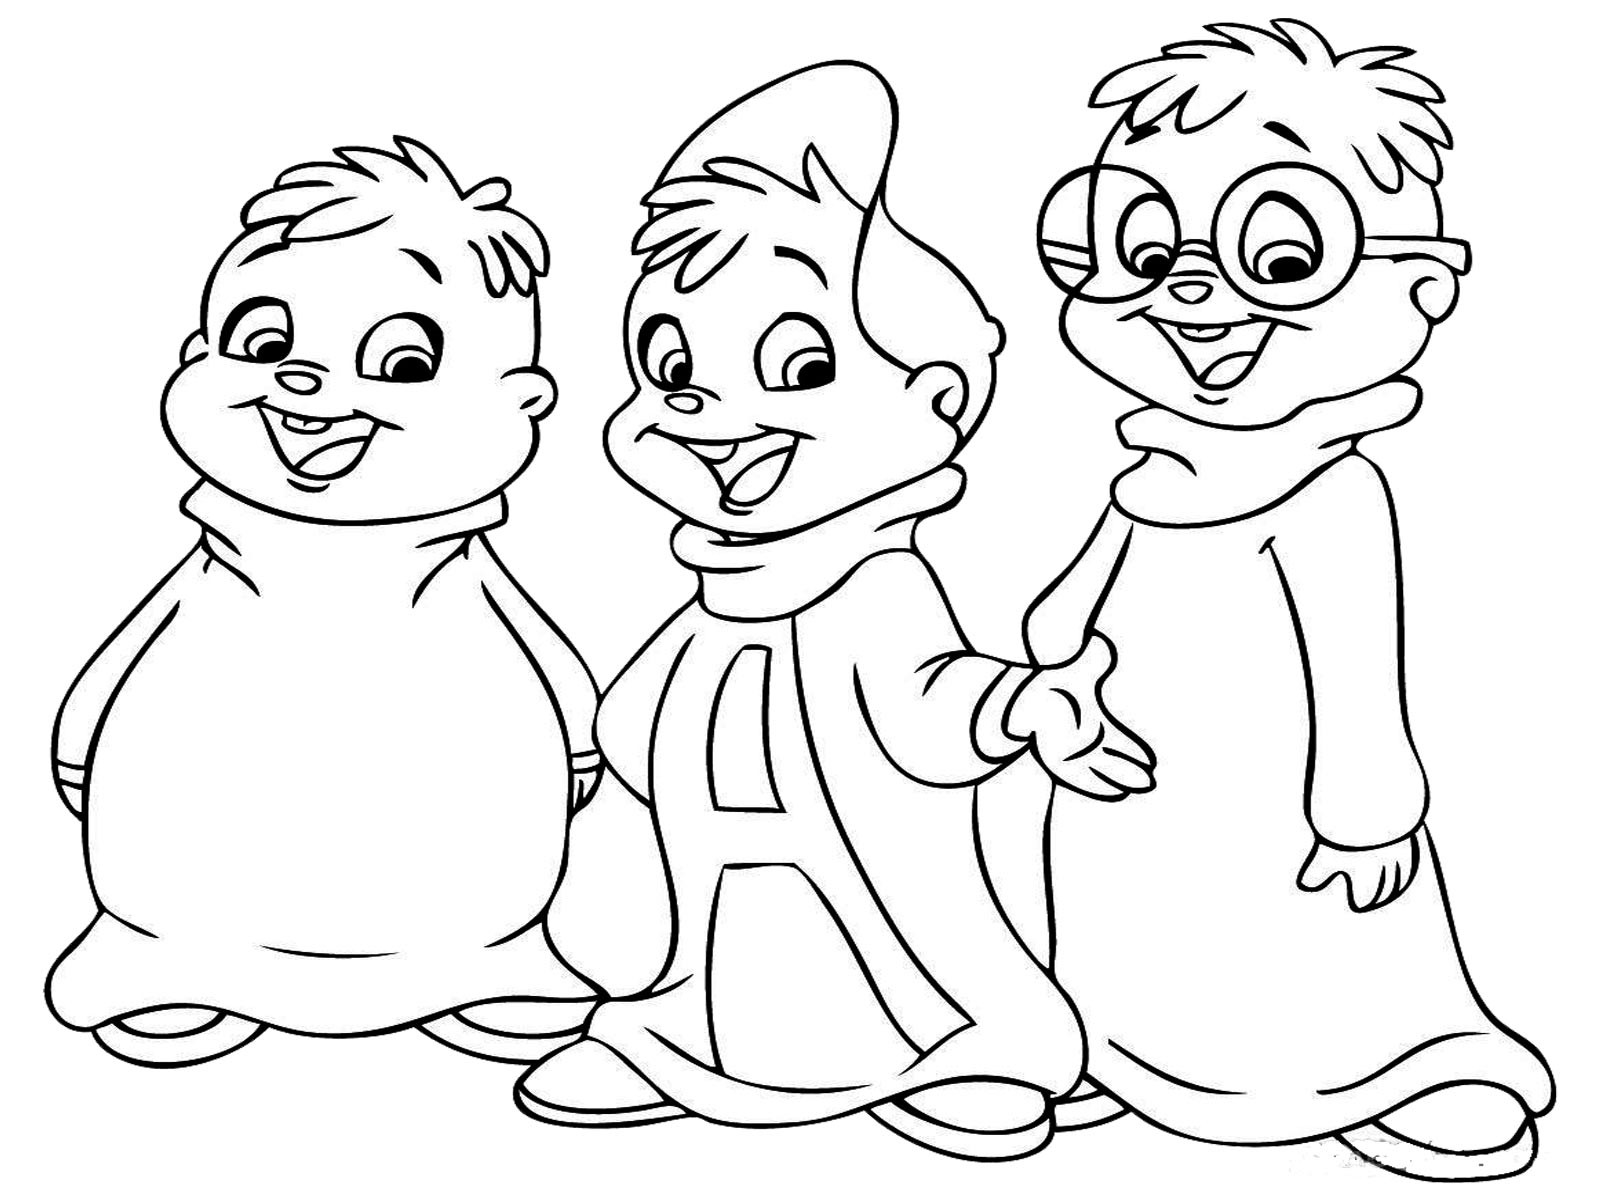 Best ideas about Cool Coloring Pages For Kids Free . Save or Pin Coloring Pages for Boys 2018 Dr Odd Now.